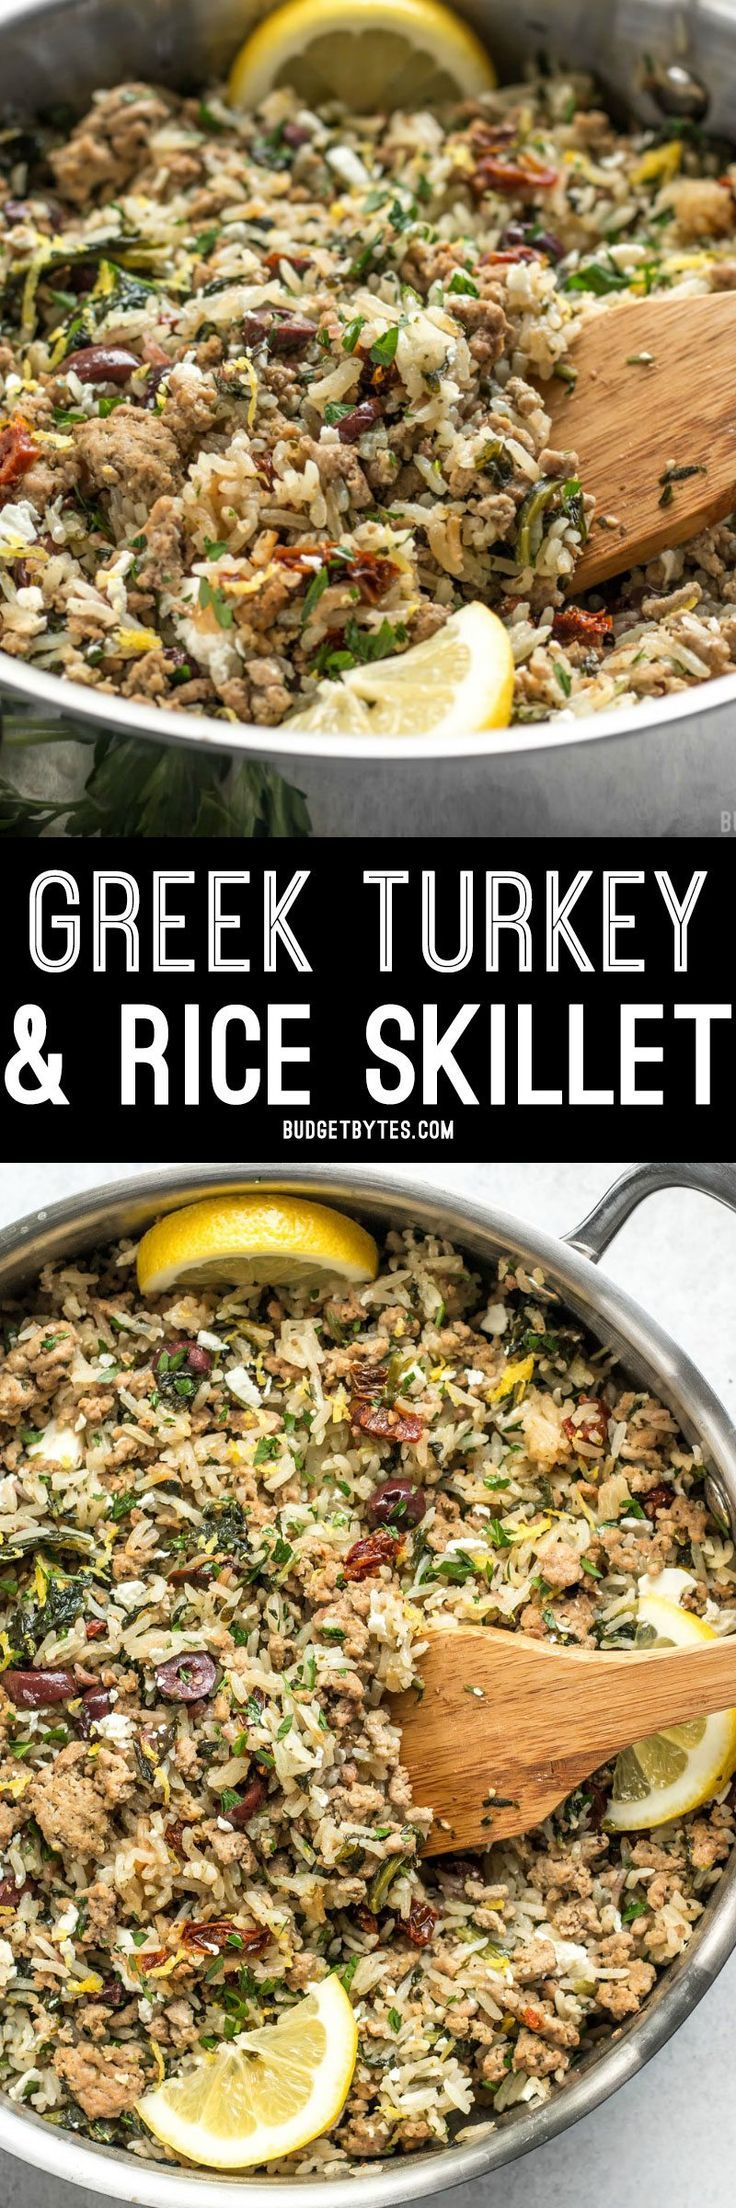 Everything cooks together in one pot for this fast and easy Greek Turkey and Rice Skillet, creating big flavor without a lot of fuss. @budgetbytes